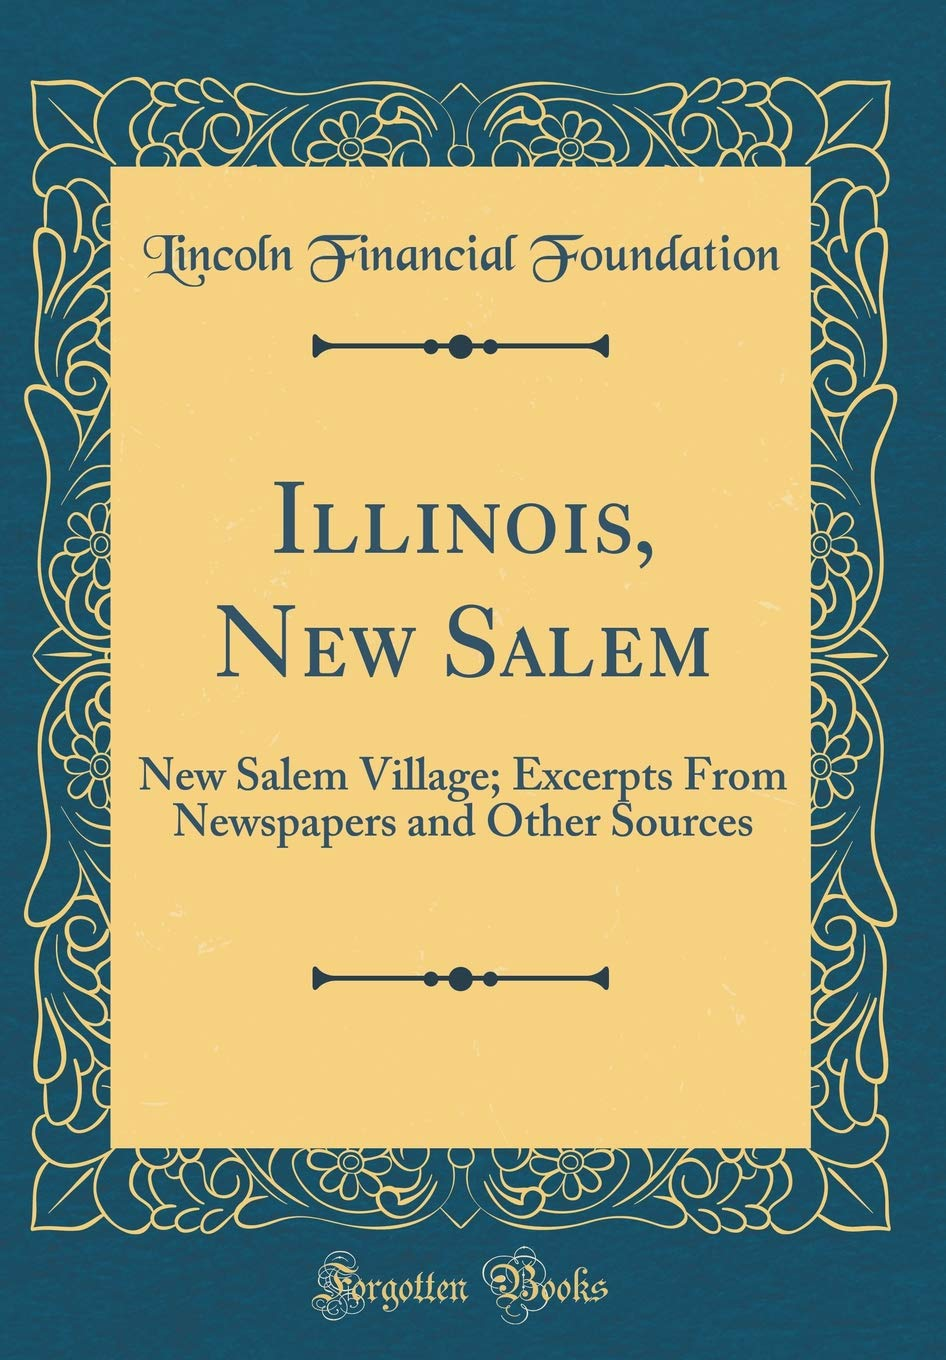 Download Illinois, New Salem: New Salem Village; Excerpts from Newspapers and Other Sources (Classic Reprint) PDF